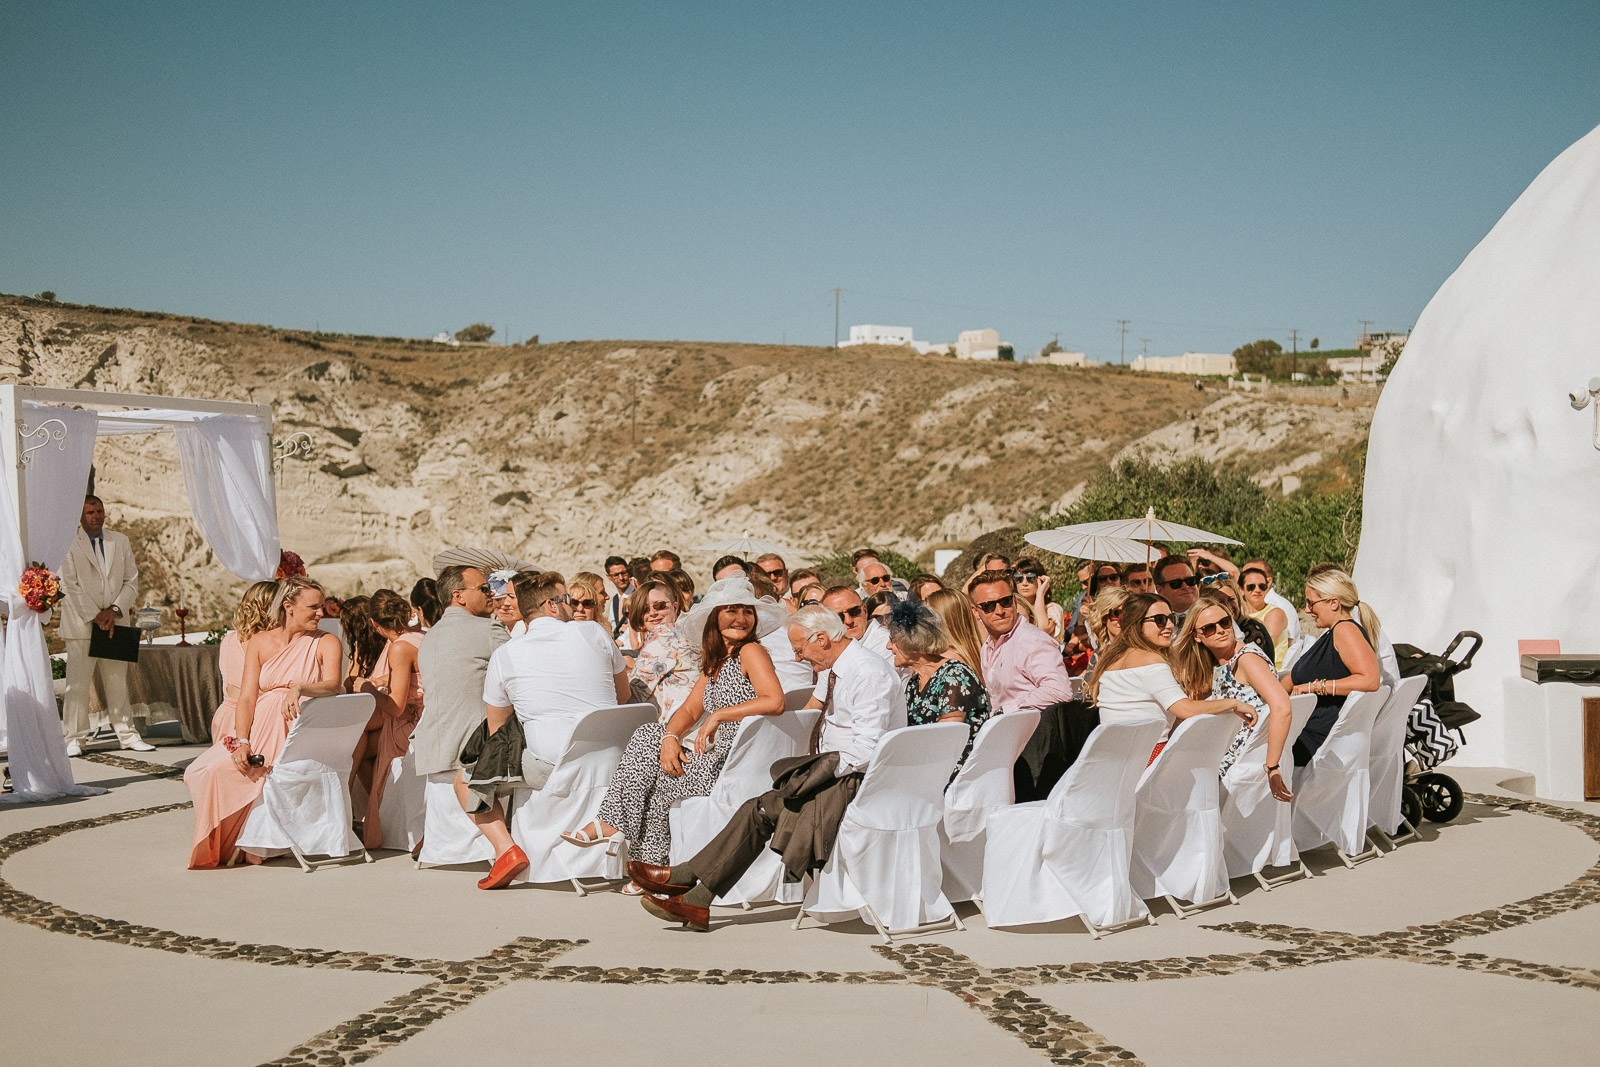 Santorini-Wedding-Photographer-Greece-Destination-Weddings-Mait-Juriado-M&J-Studios-054